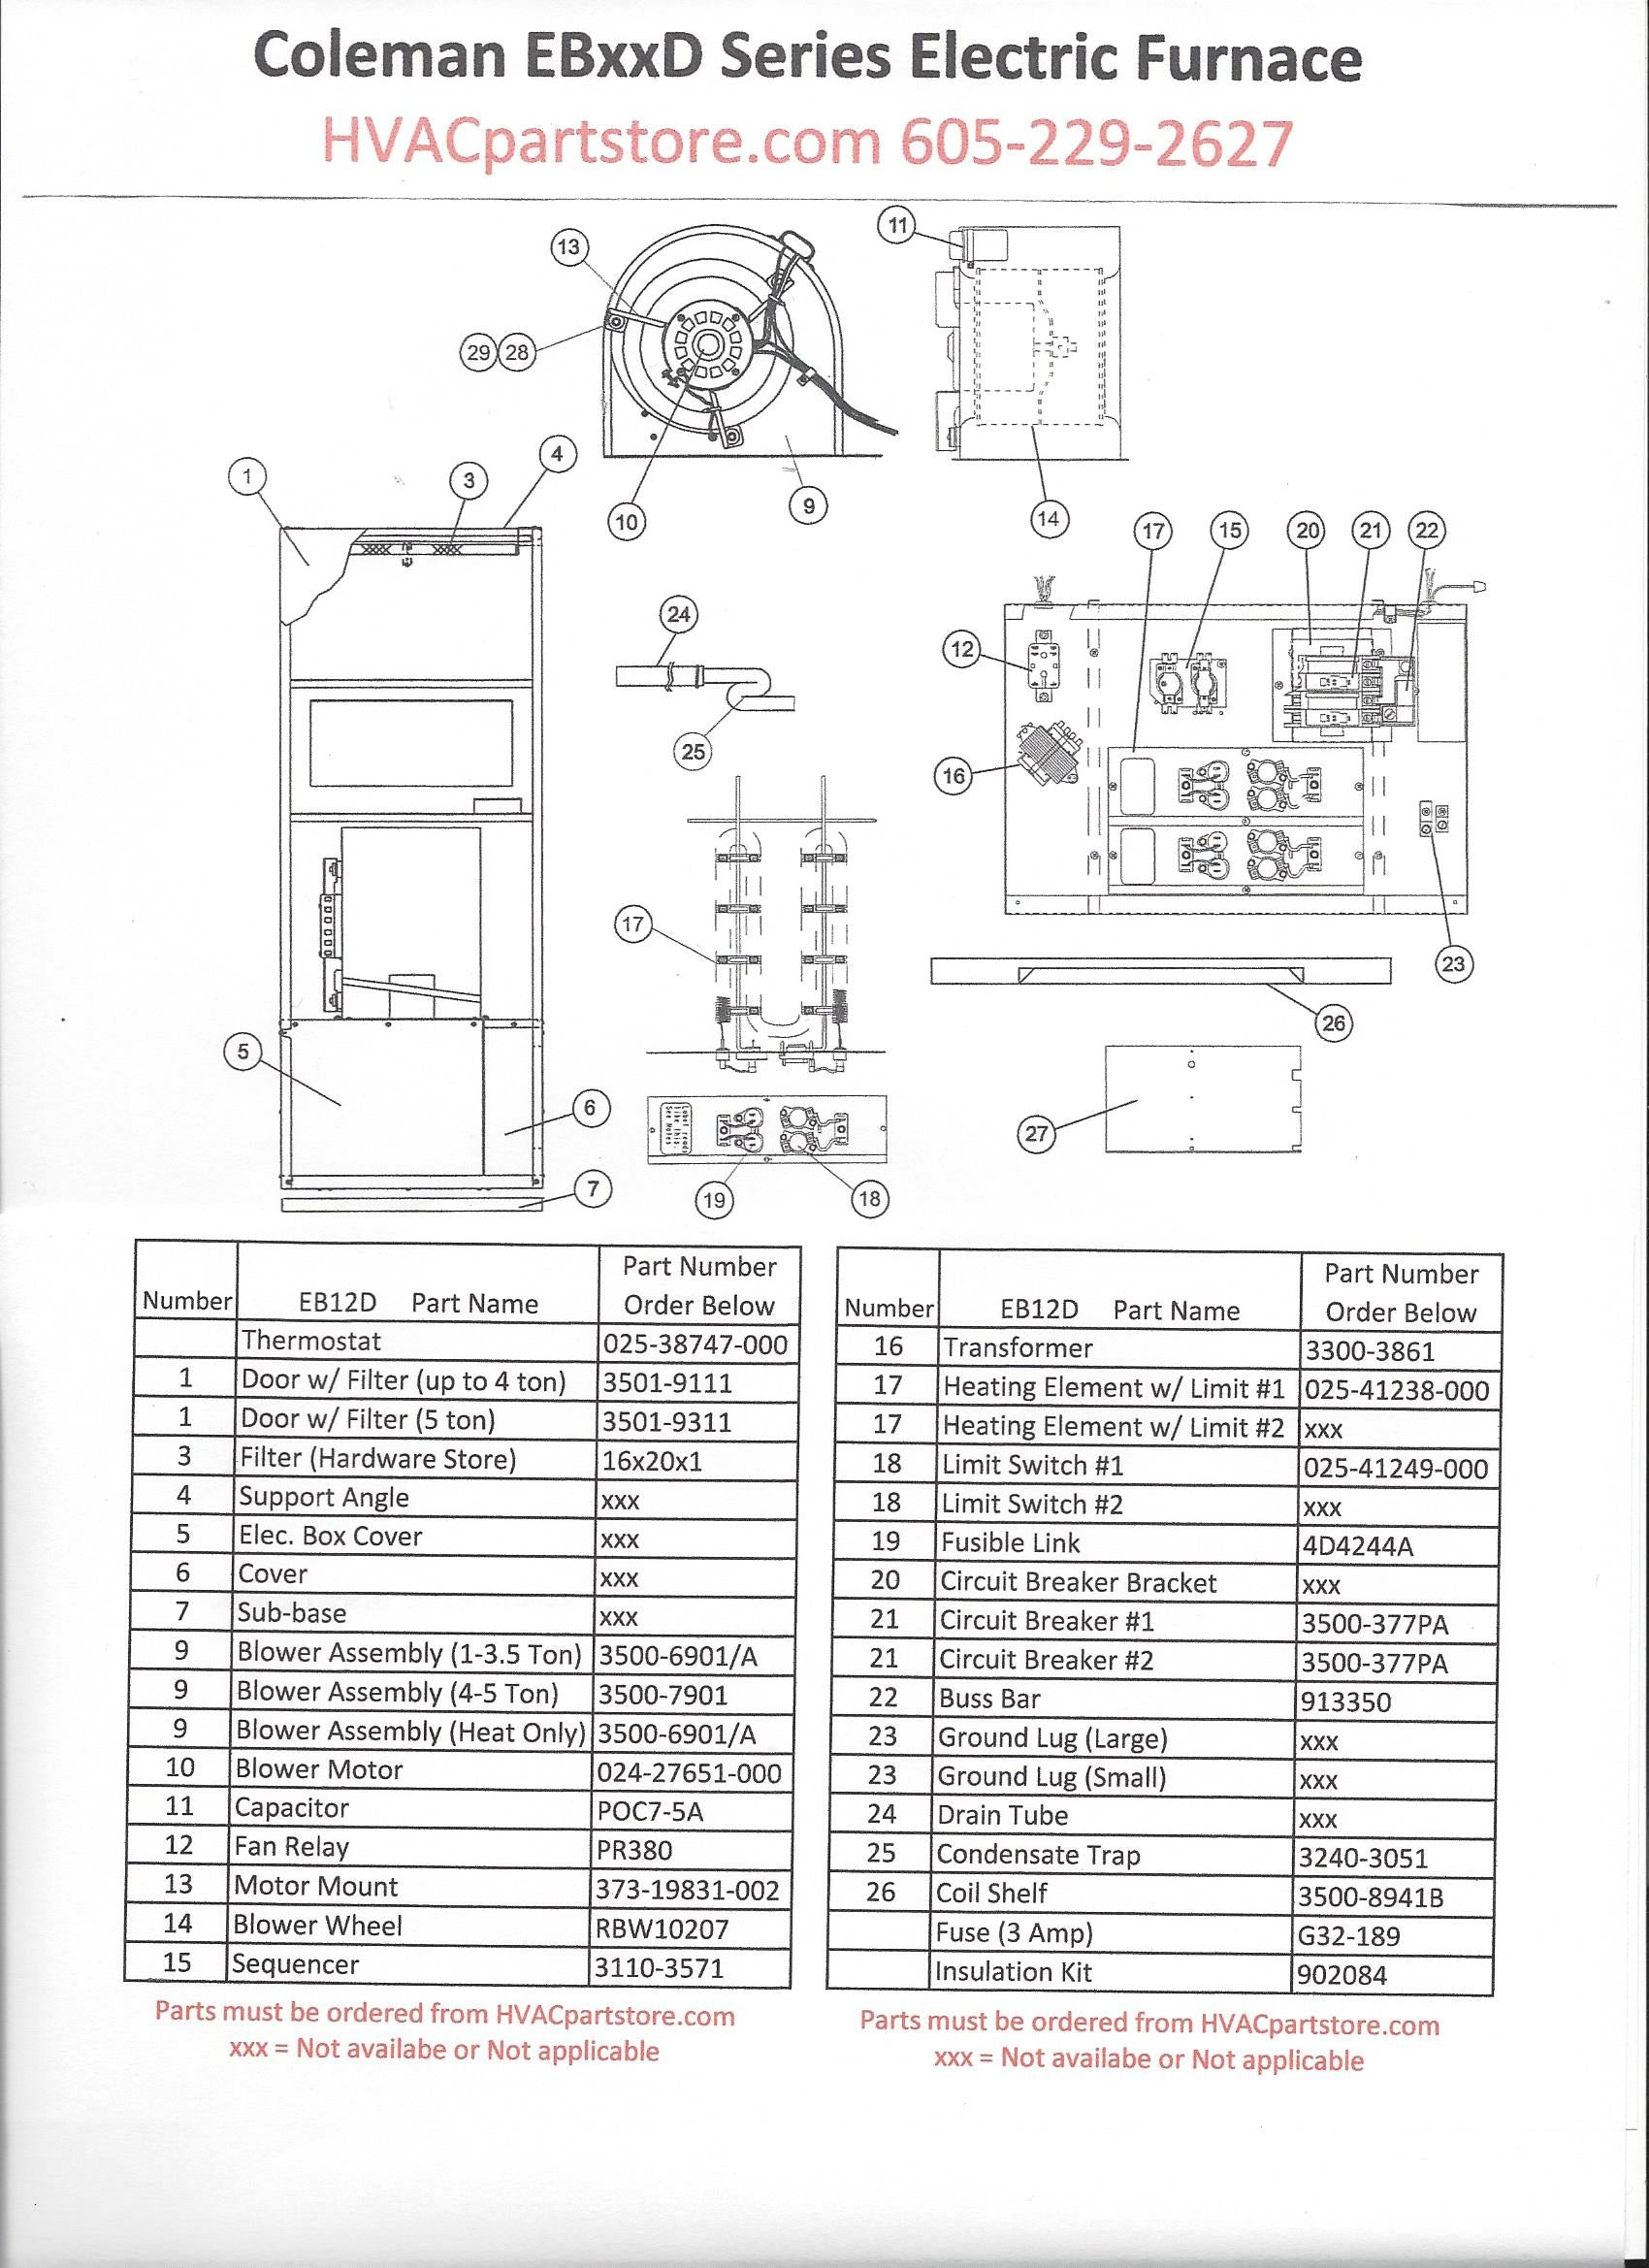 10 Kw Electric Furnace Wiring Diagram 87 Blazer Radio Wiring Diagram Cheerokee Losdol2 Jeanjaures37 Fr